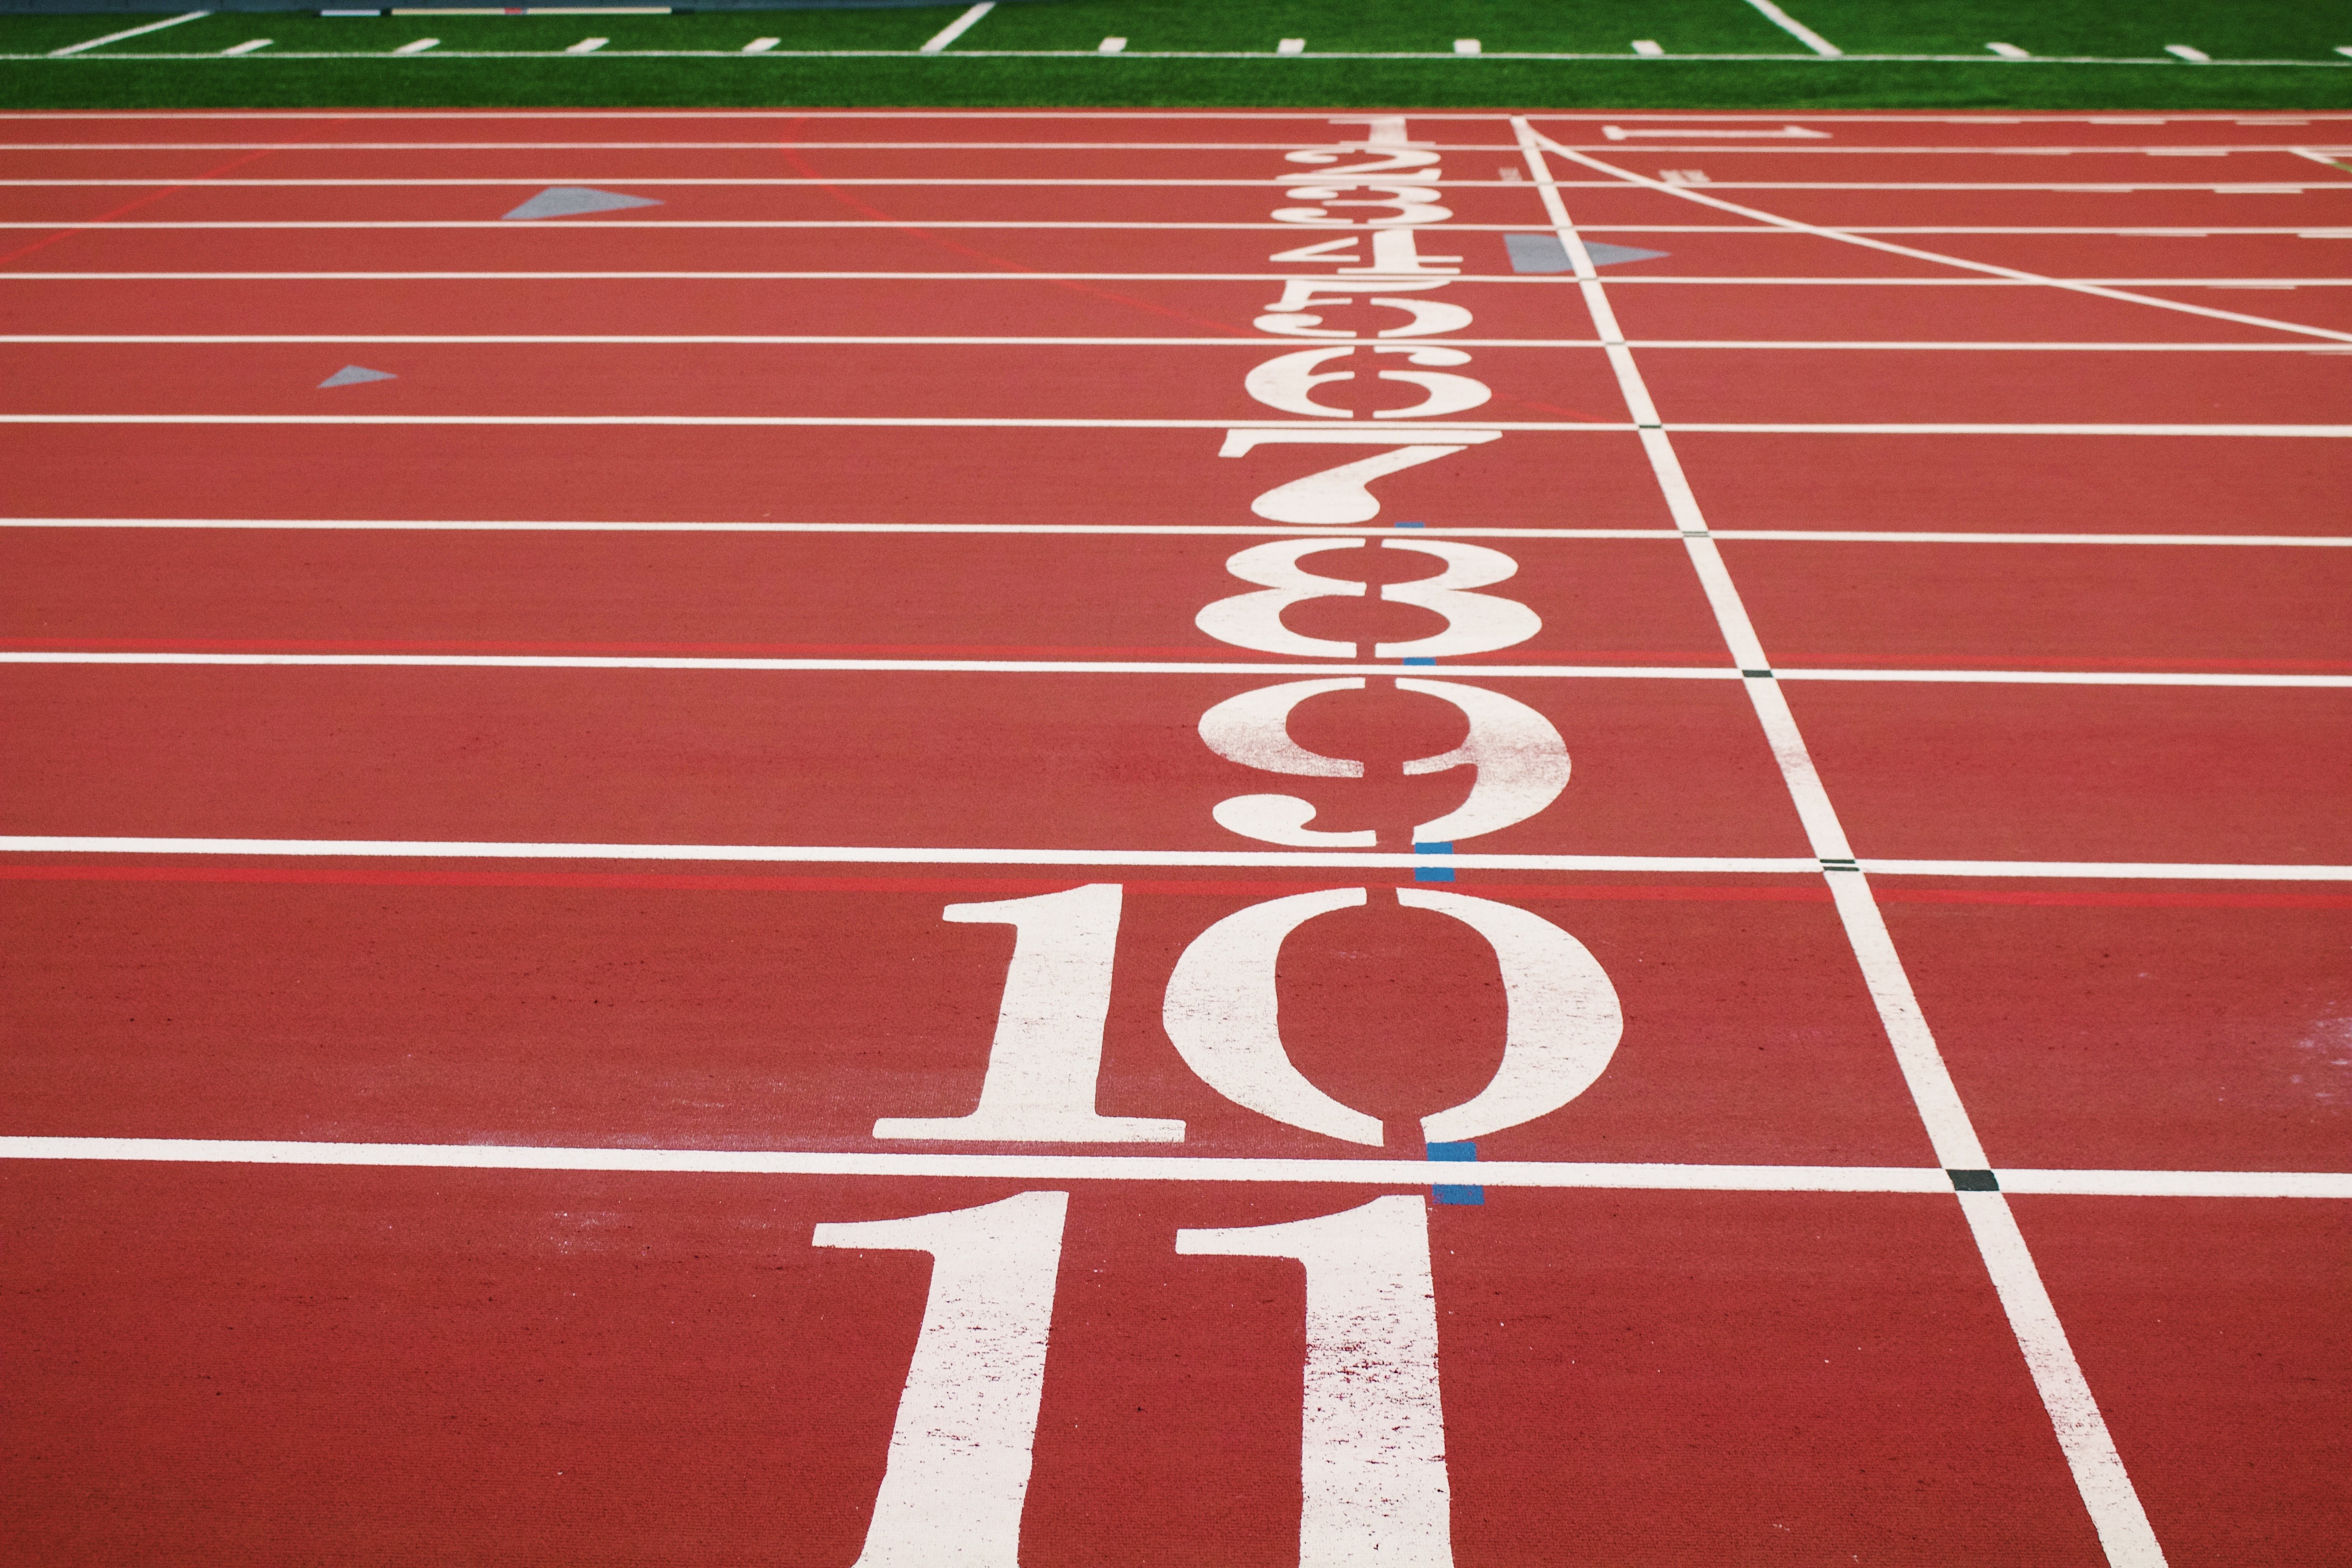 Numbers along the starting line on a running track